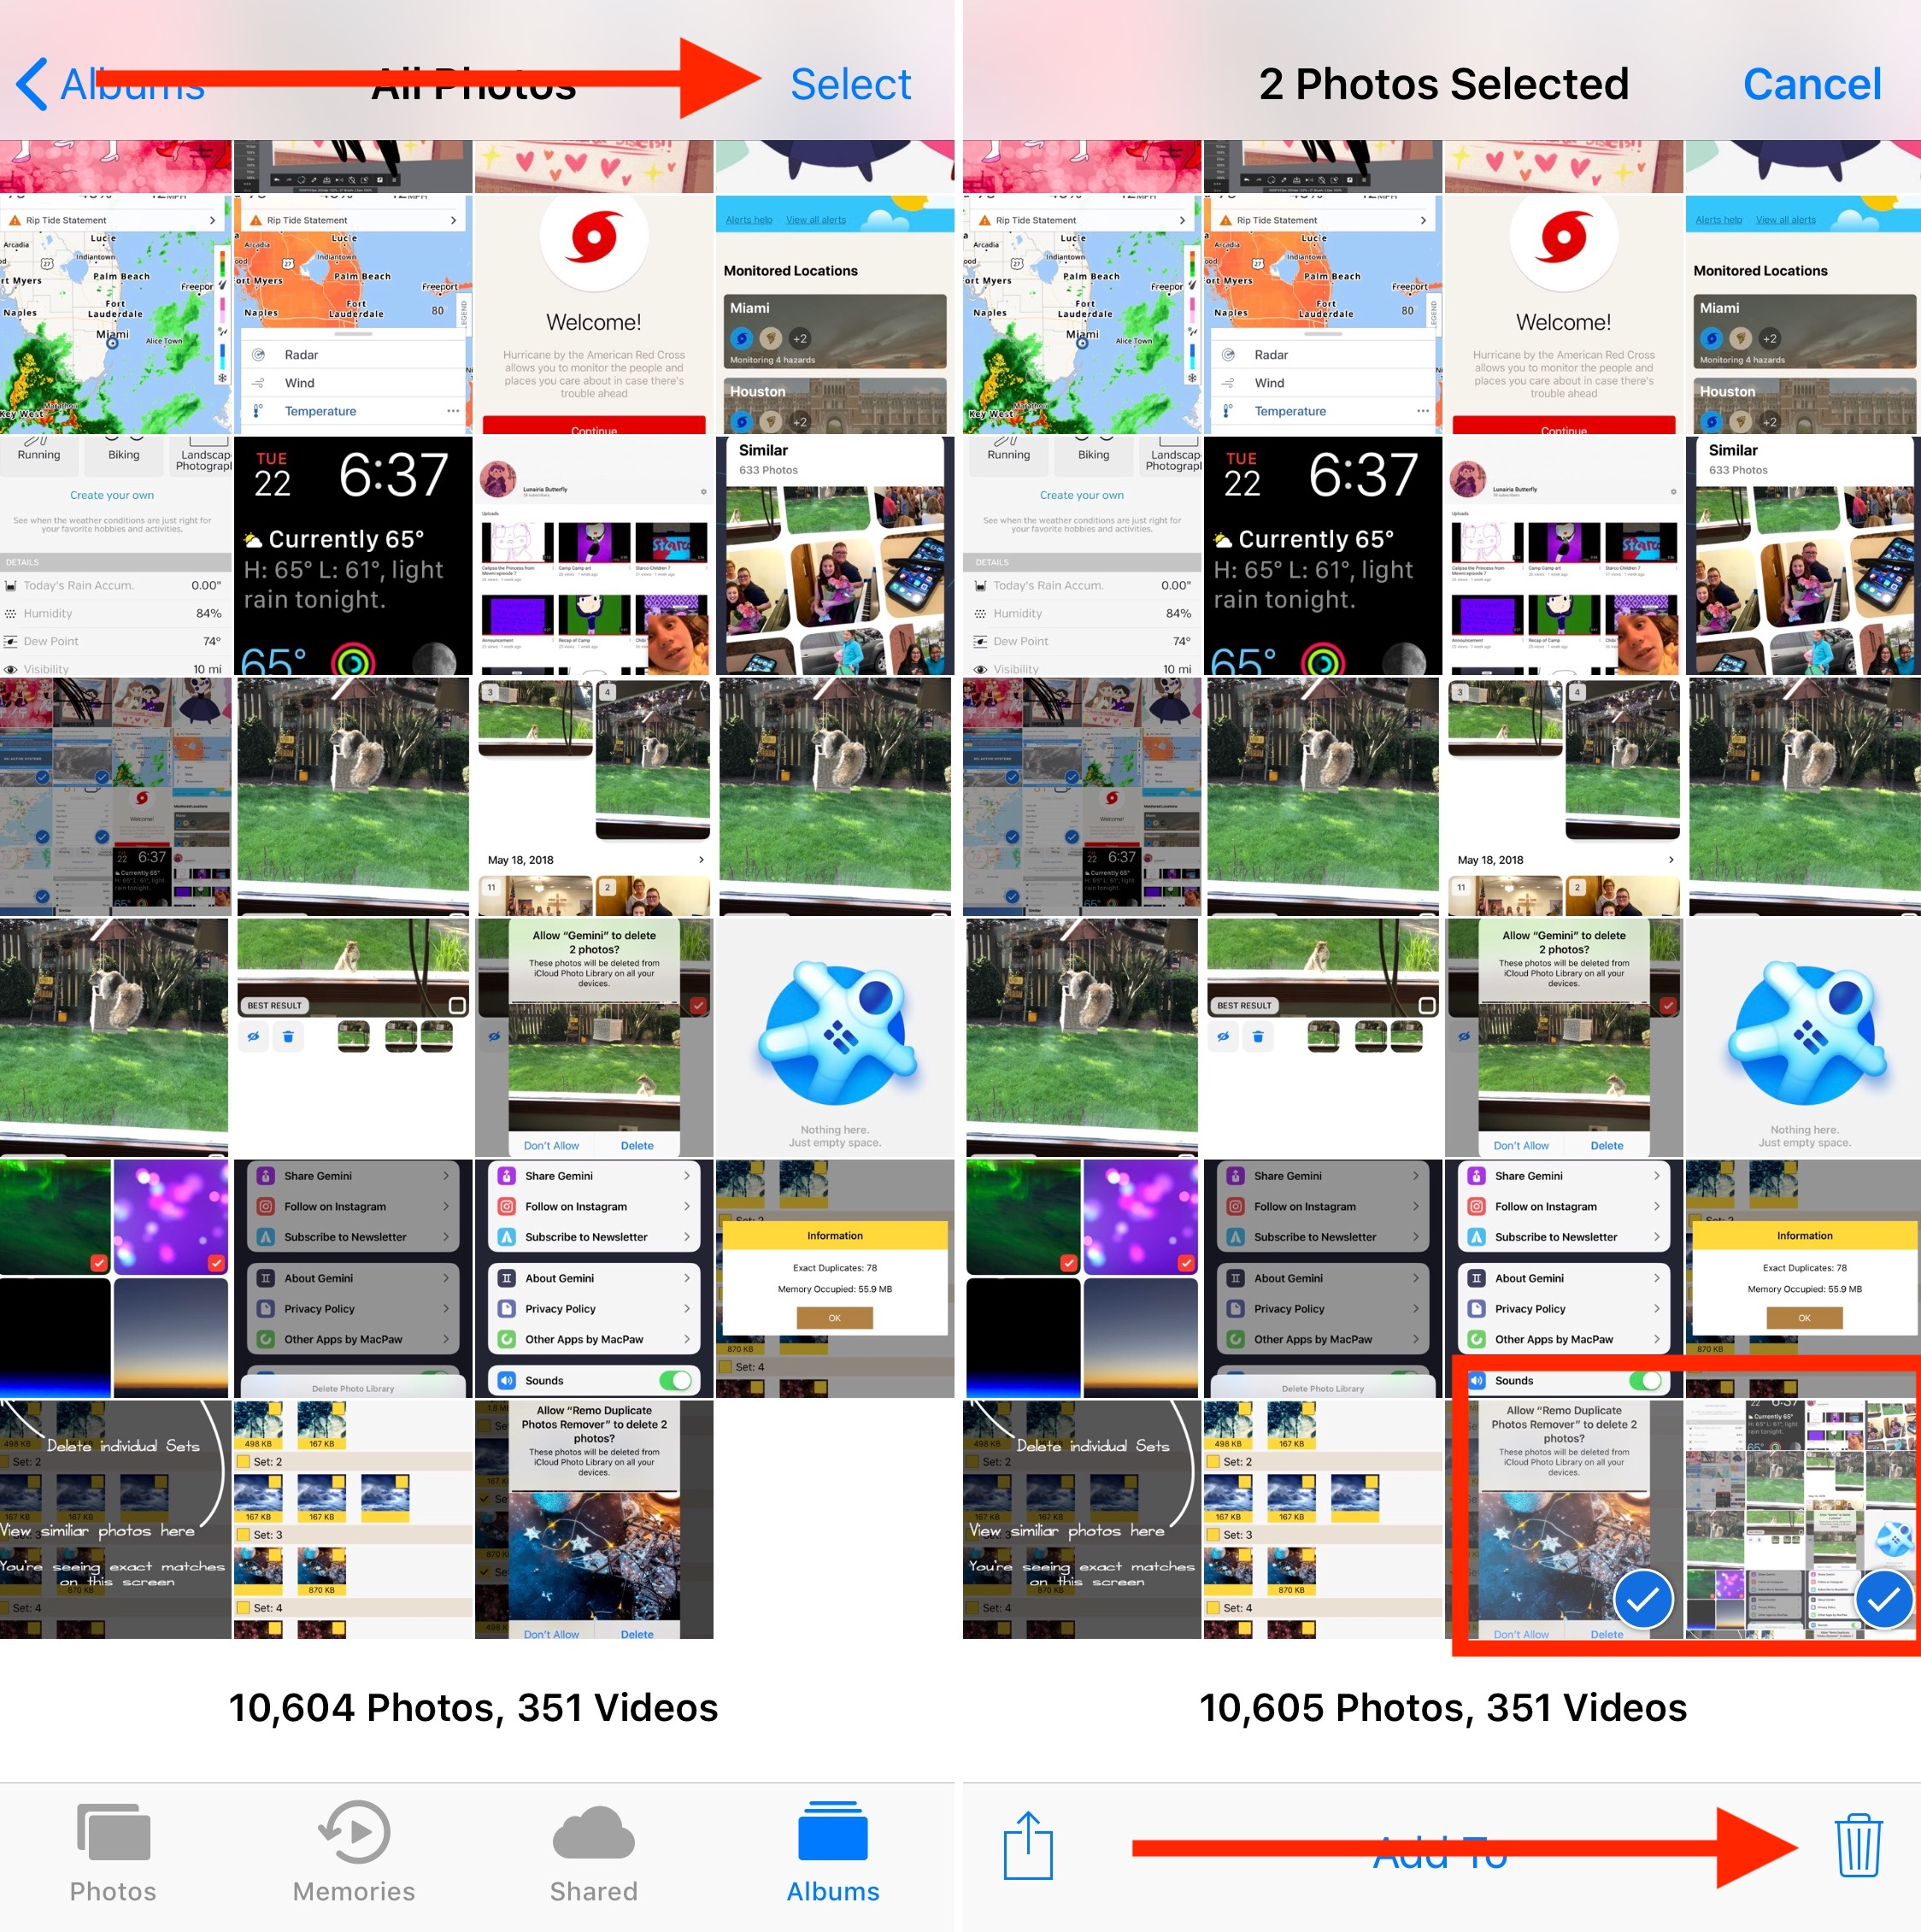 Delete Duplicate Images Manually